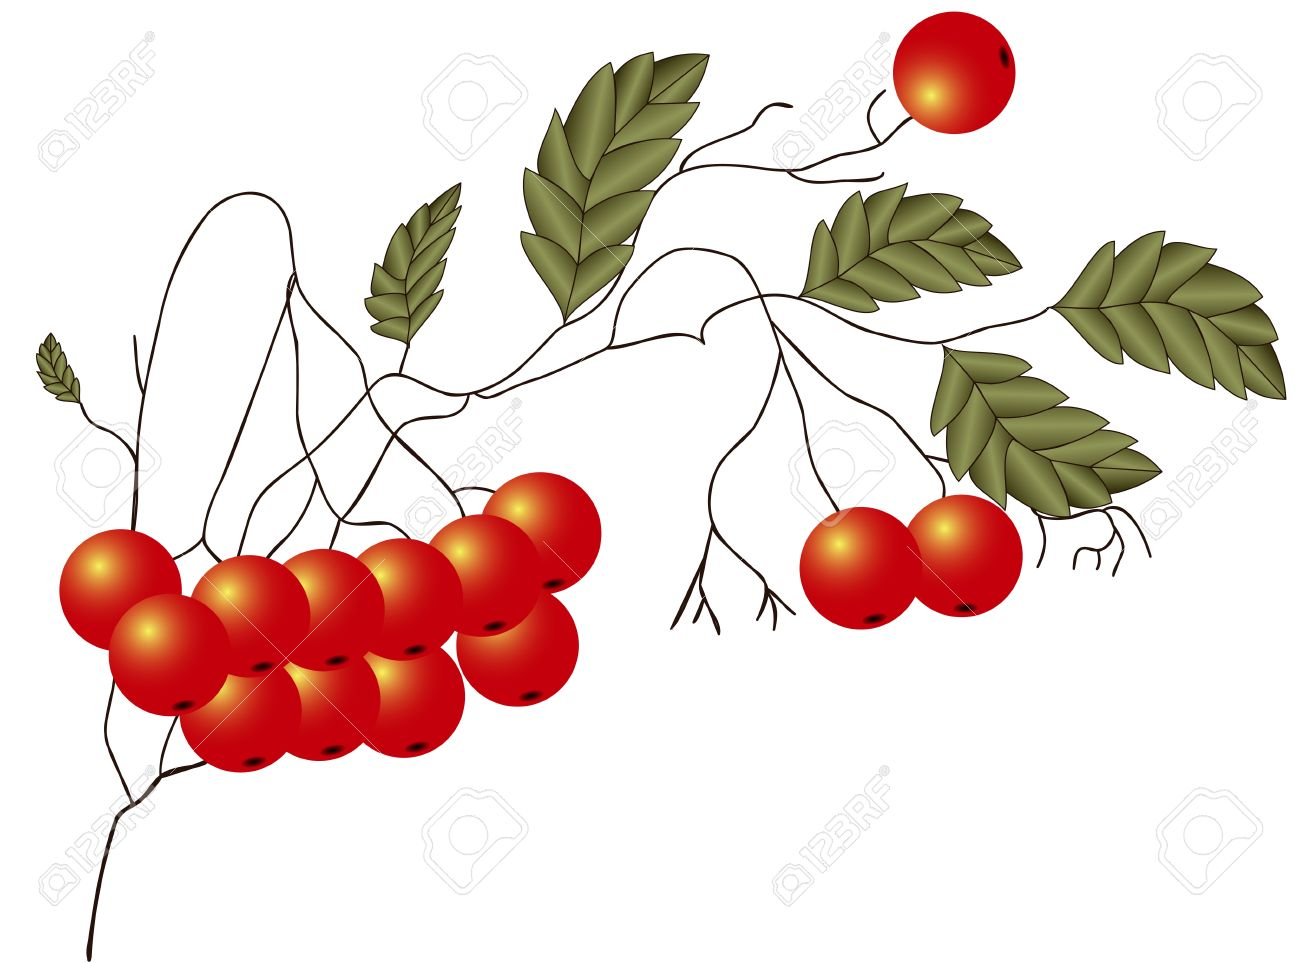 Illustration Of Ripe Red Rowan Twigs With Leaves On A White.